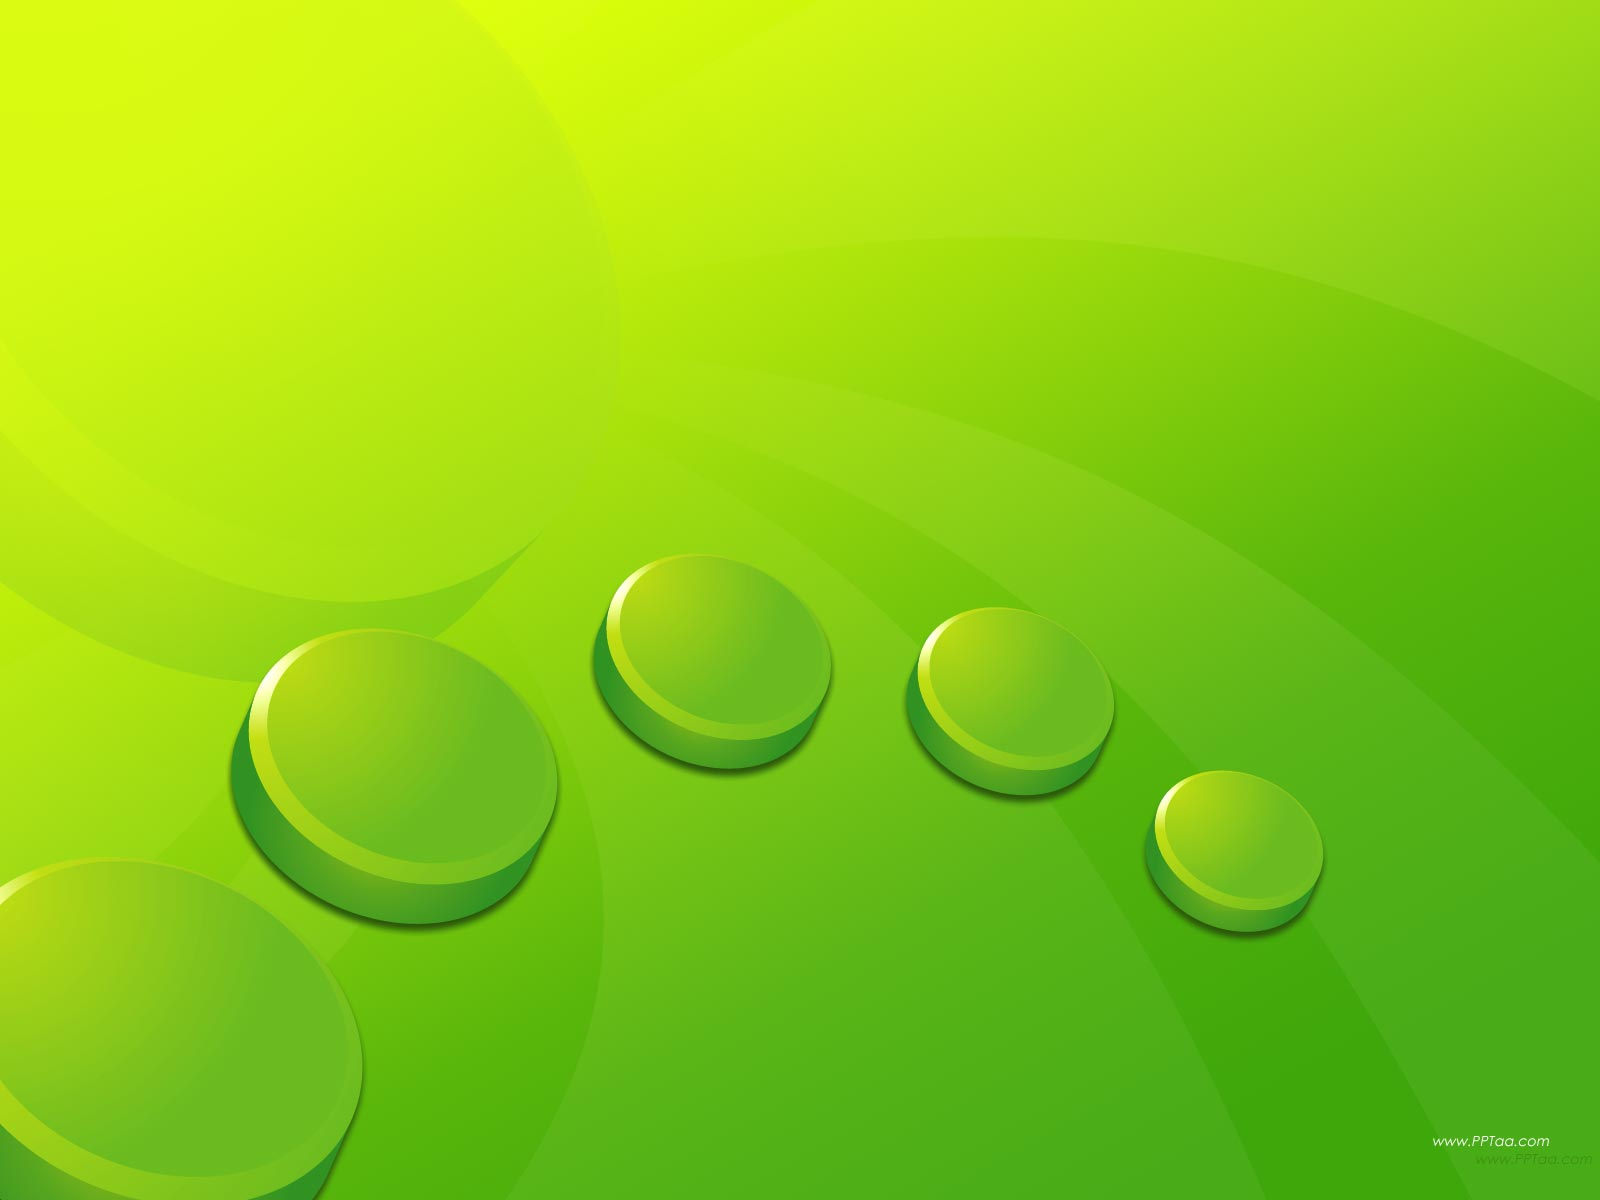 Green Circles PPT Backgrounds